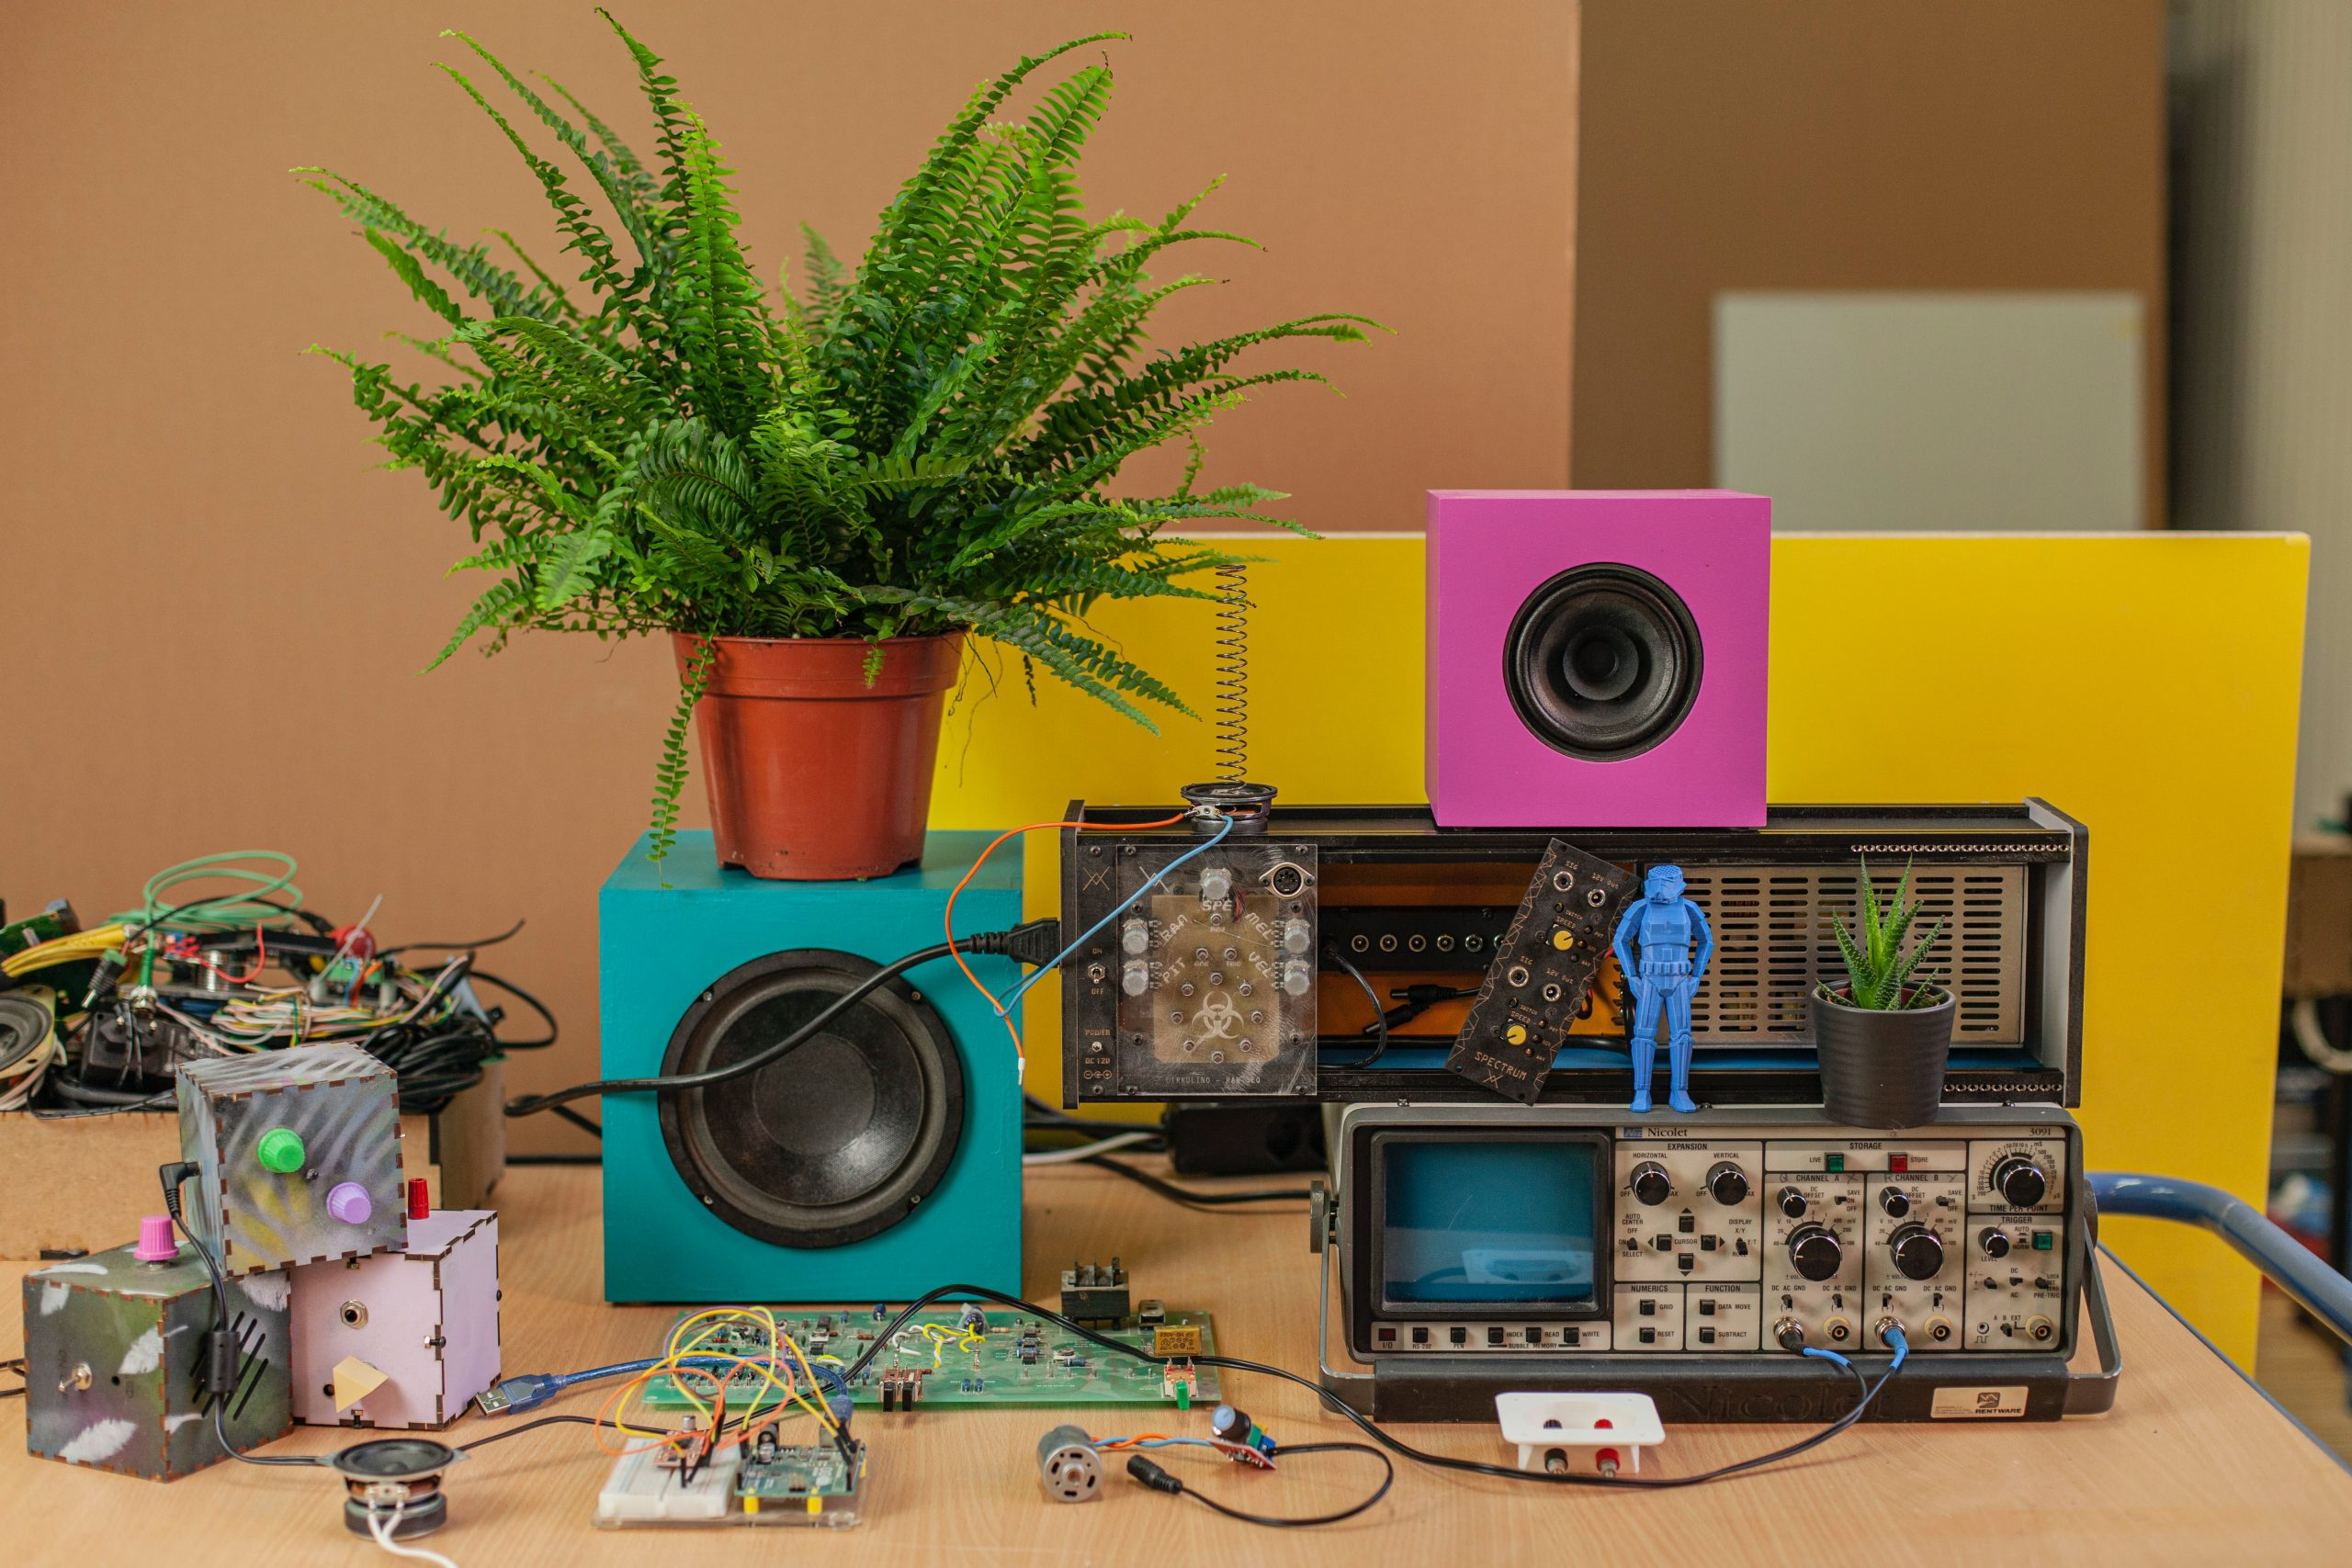 Experiments with sound electronics